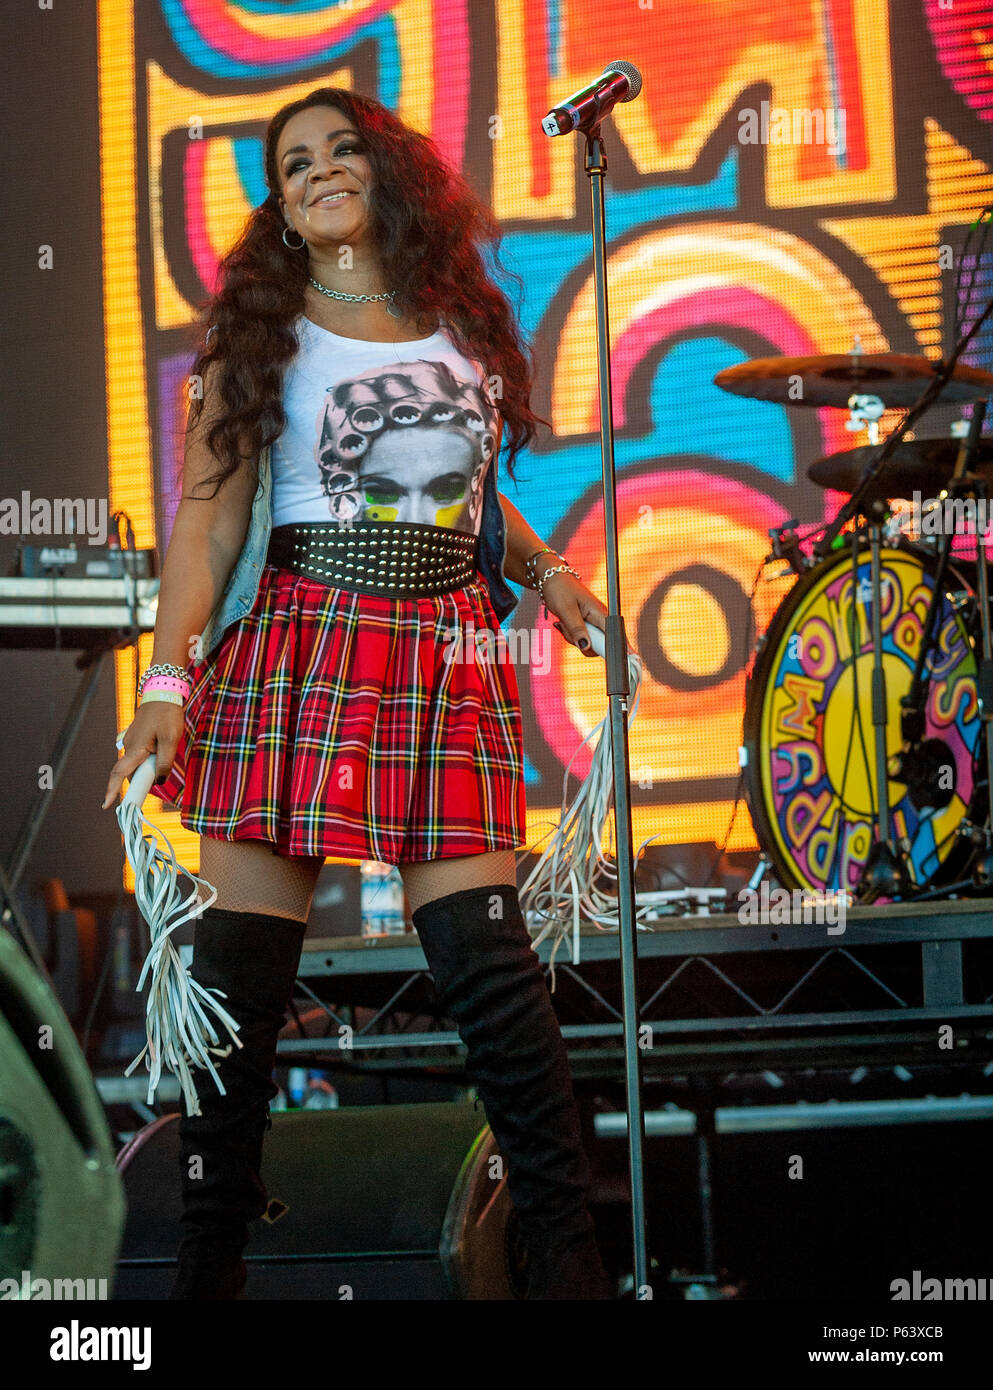 Rowetta of The Happy Mondays performing live on stage at the Sunday Sessions, Dalkeith, Edinburgh, Scotland on 24th June 2018 at  : Photo Credit Marti - Stock Image